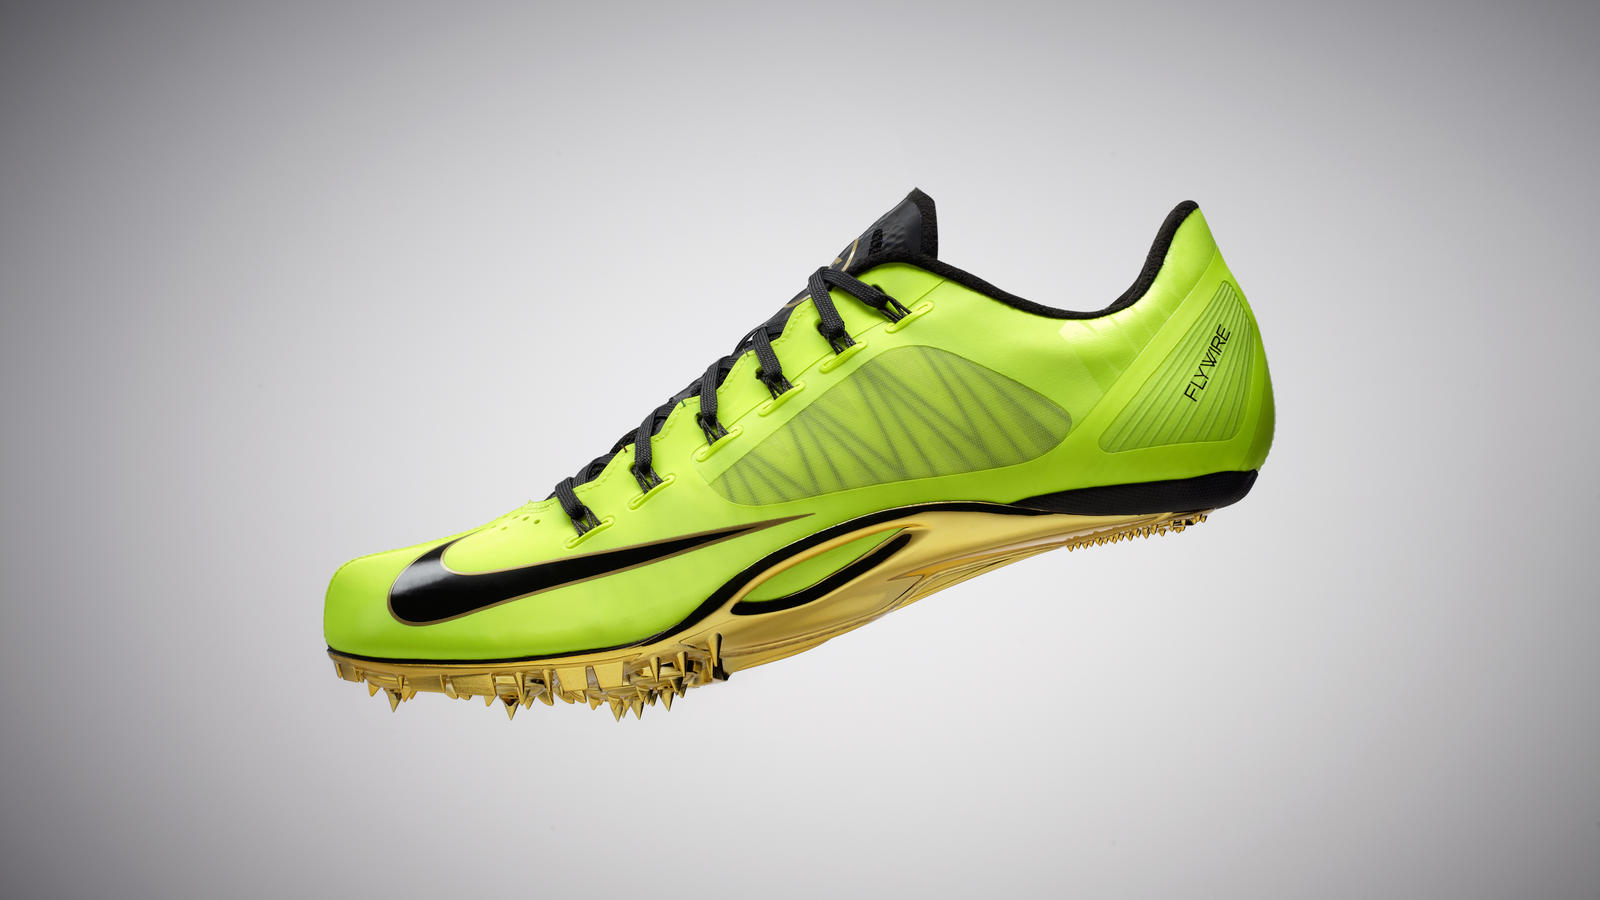 Nike Zoom Superfly R4 Profile